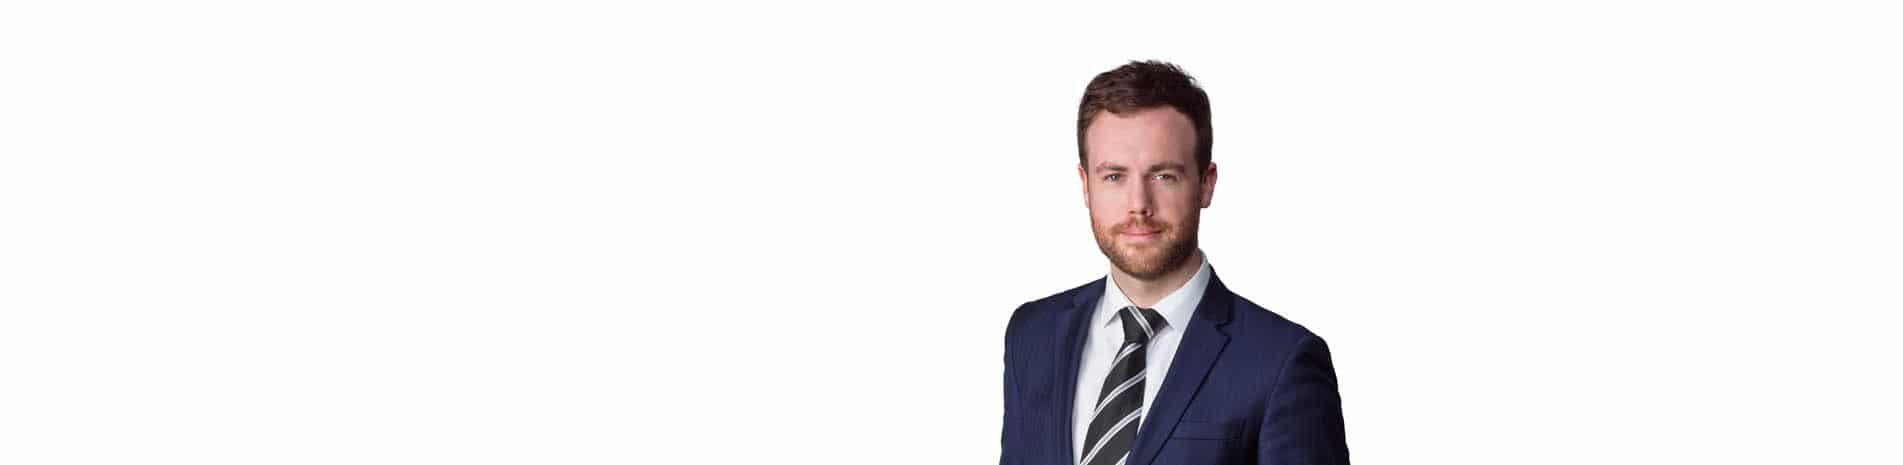 simon o'halloran traffic lawyer Melbourne